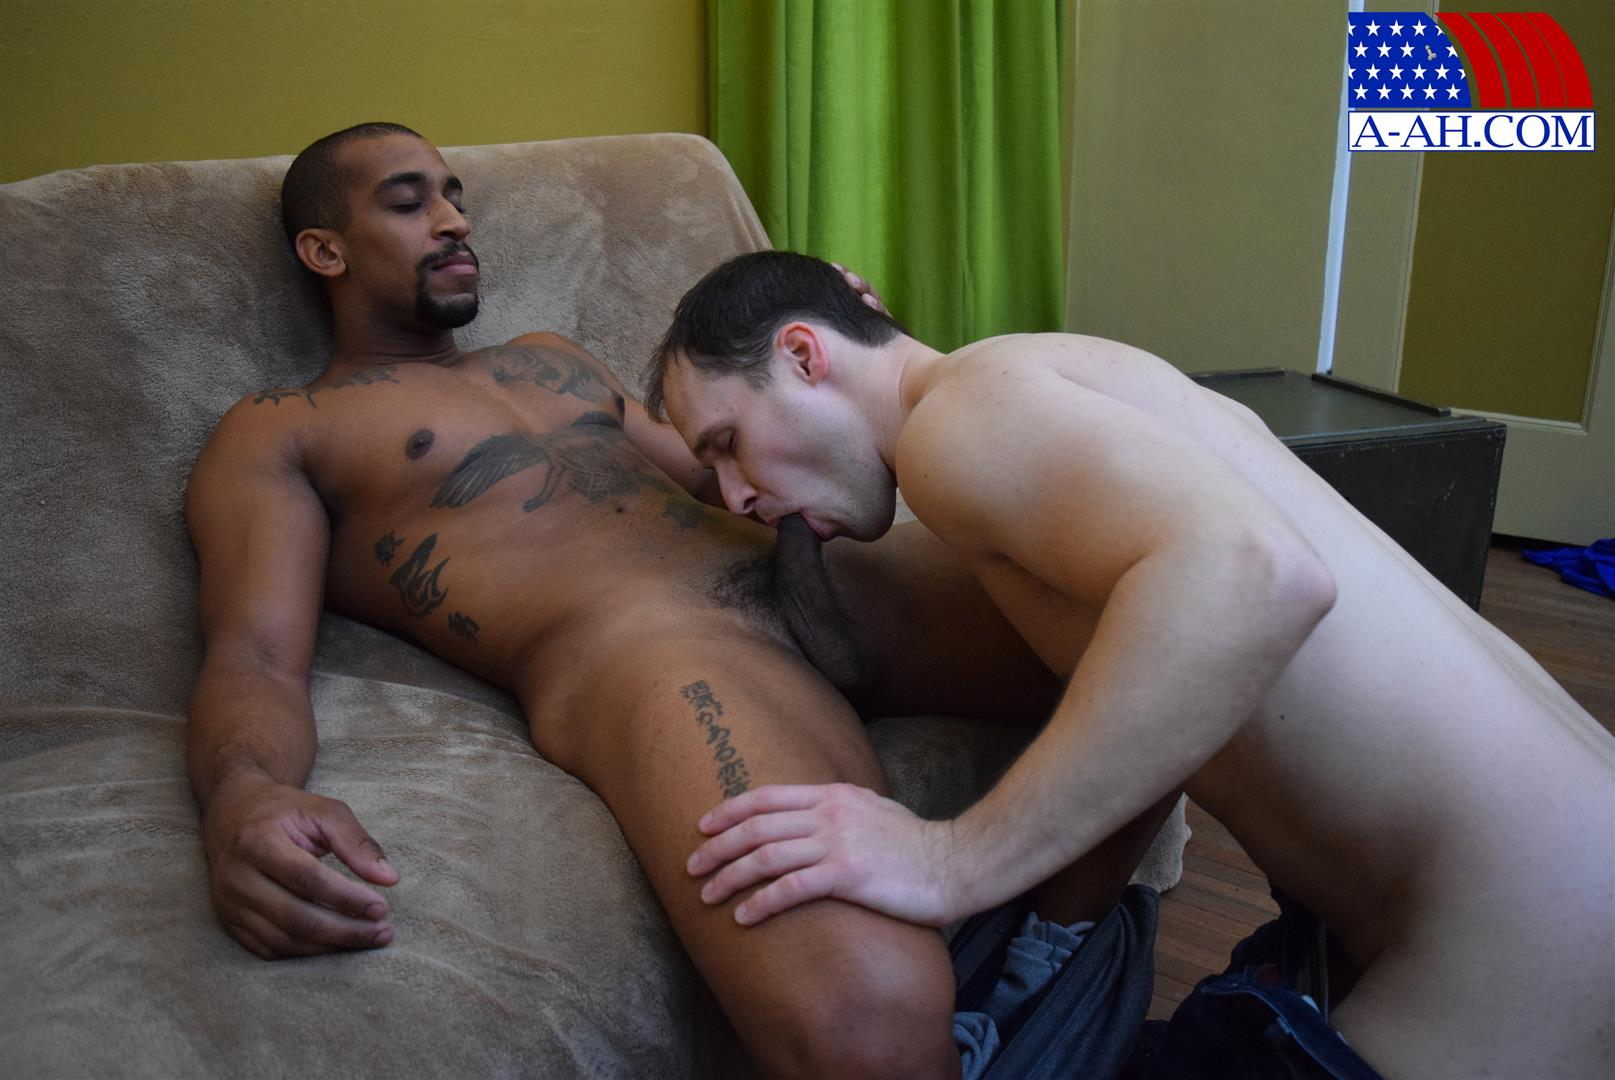 All American Heroes Interracial Naked Soldiers Fucking Bareback Amateur Gay Porn 03 White Navy Petty Officer Fucks A Black Army Lieutenant